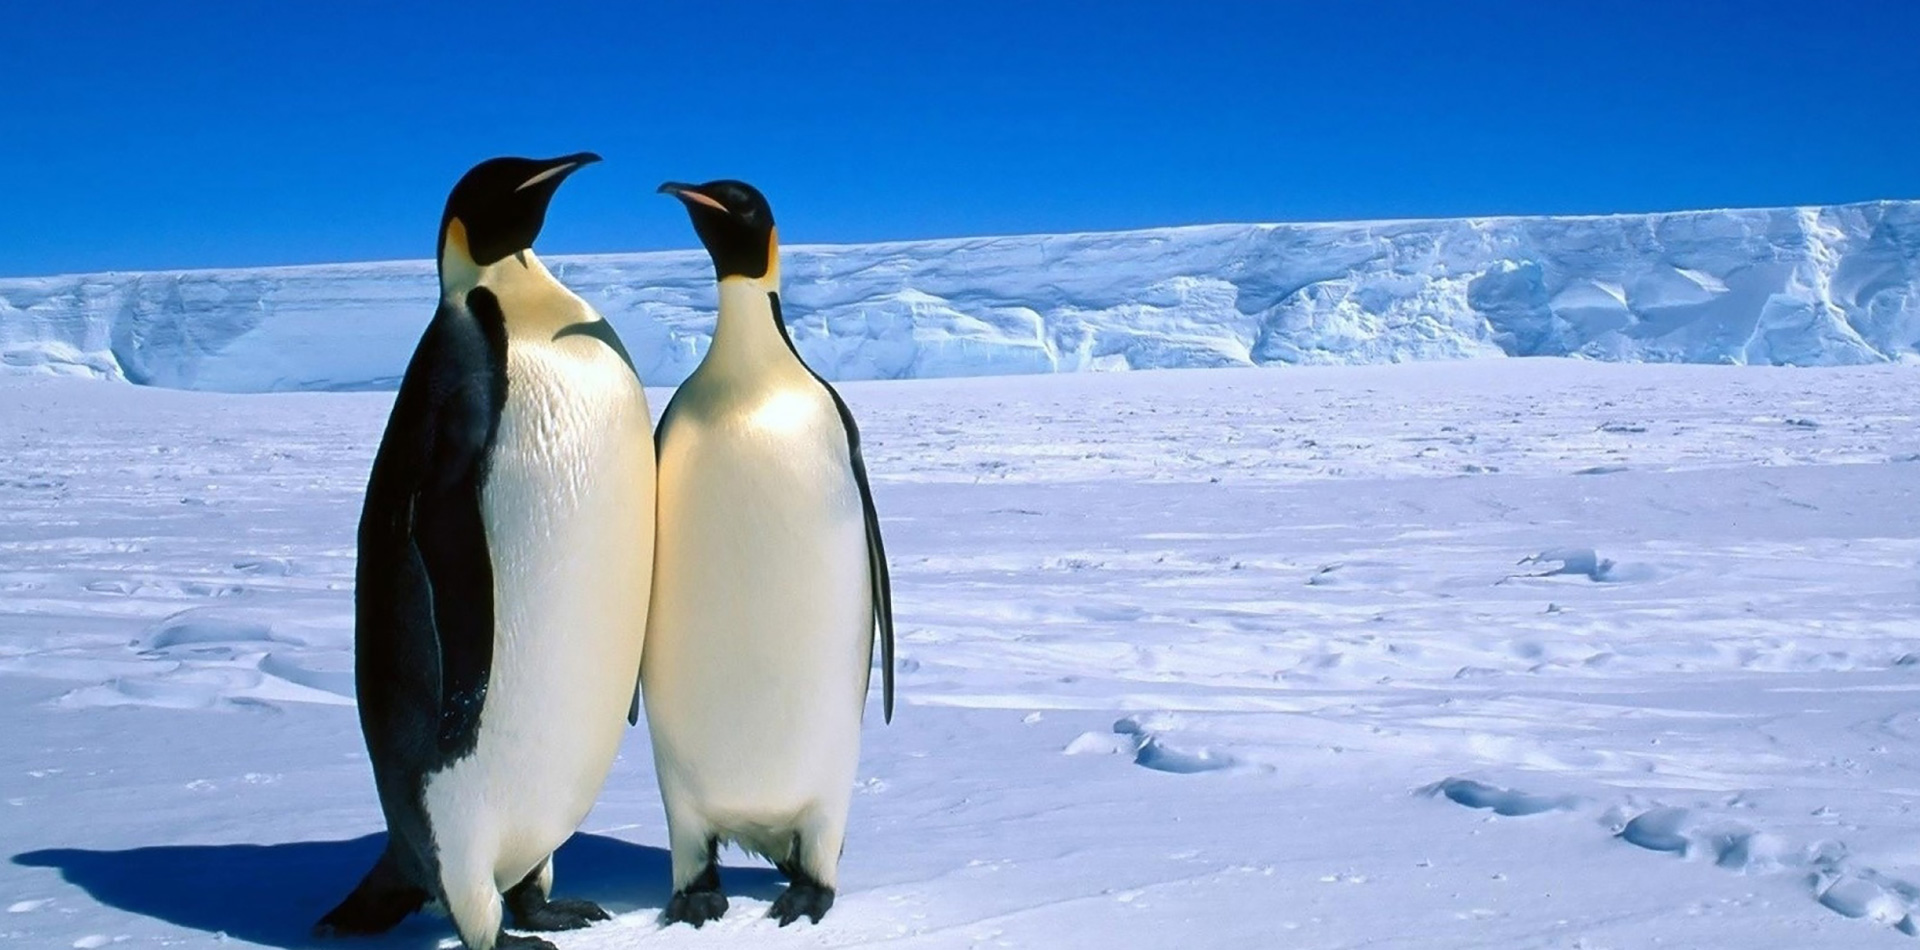 SICK's 3D LiDAR Helps Scientists Count Penguins with Drones in Antarctica